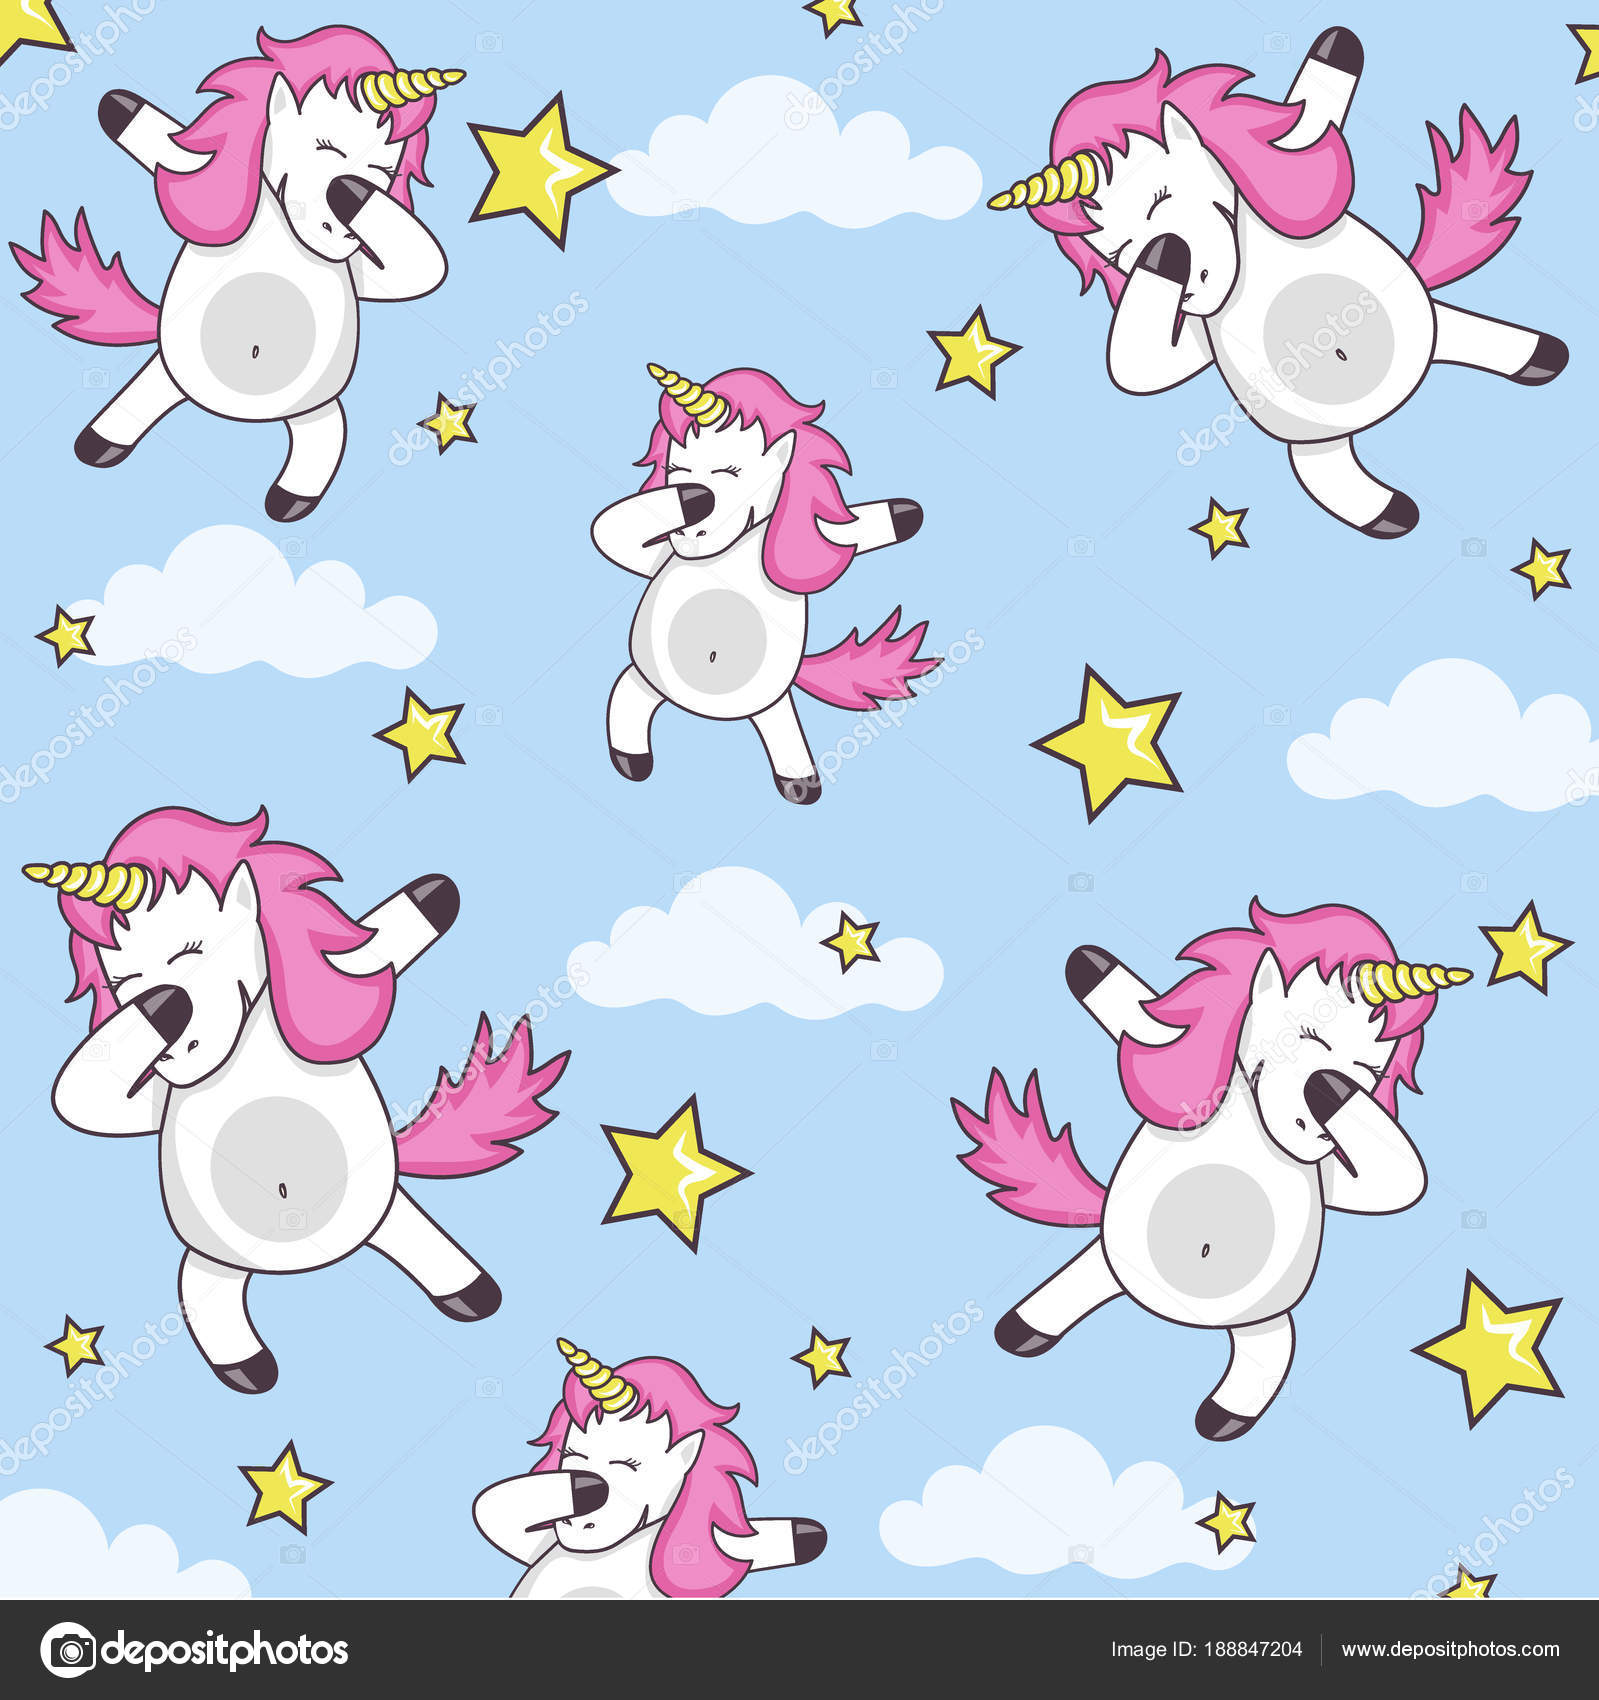 Vector pattern with cute unicorns clouds and stars magic background with little dabbing unicorns cute funny unicorn dancing dab vector cartoon